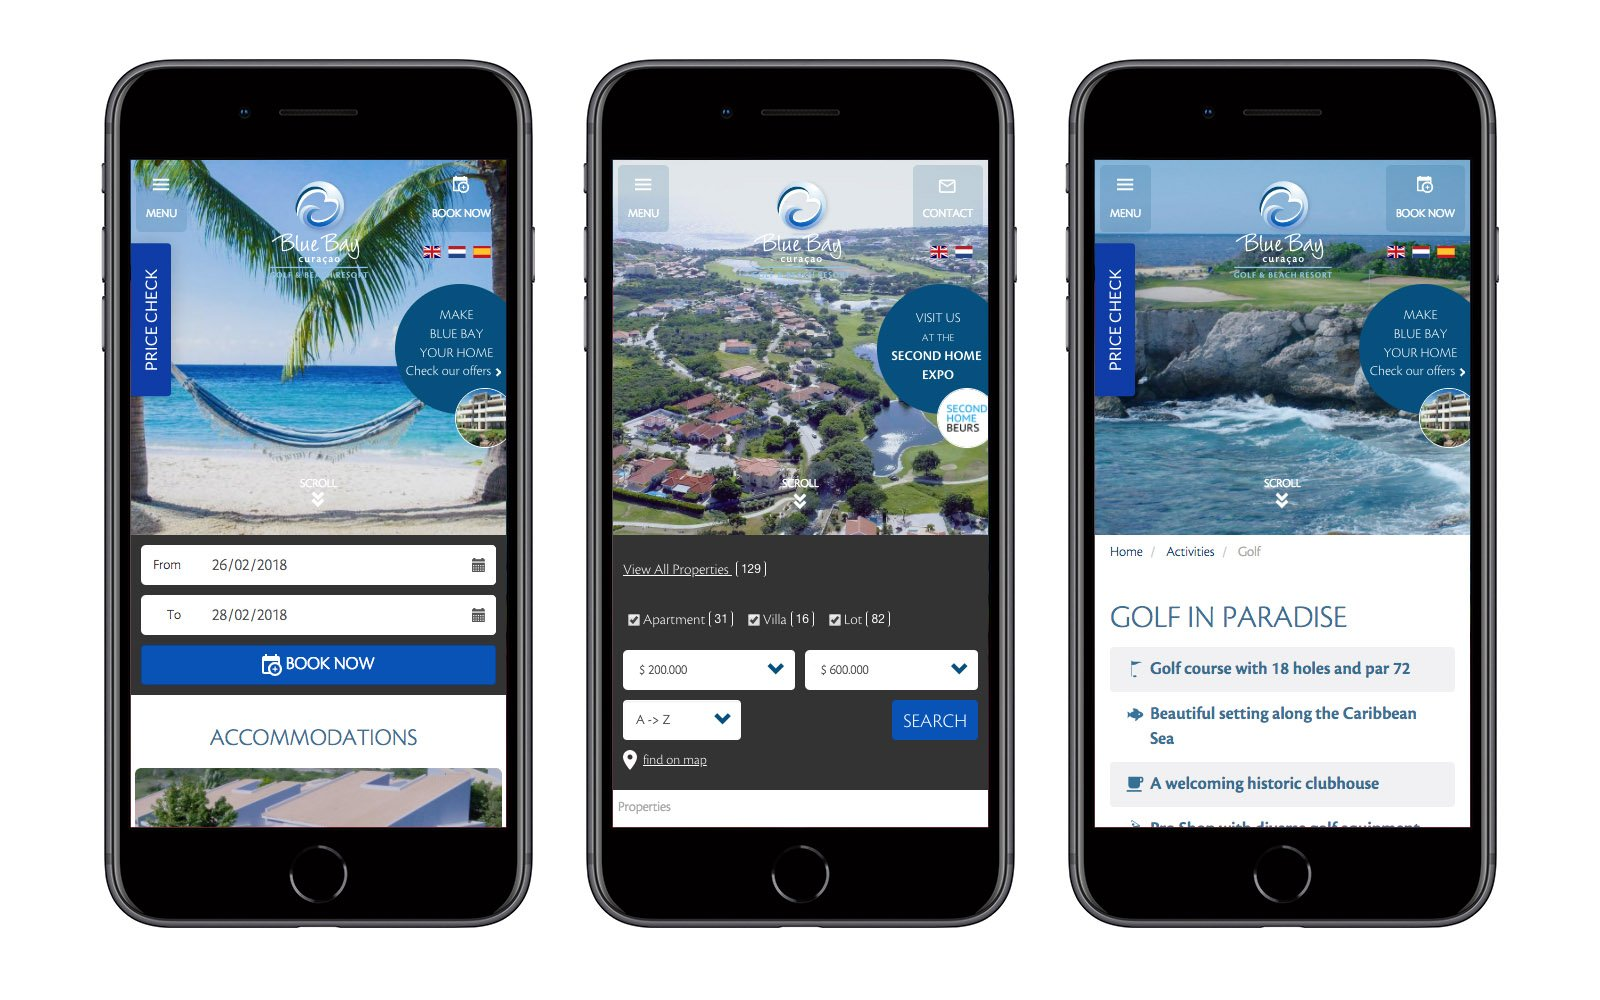 Blue Bay Curaçao screenshot 2